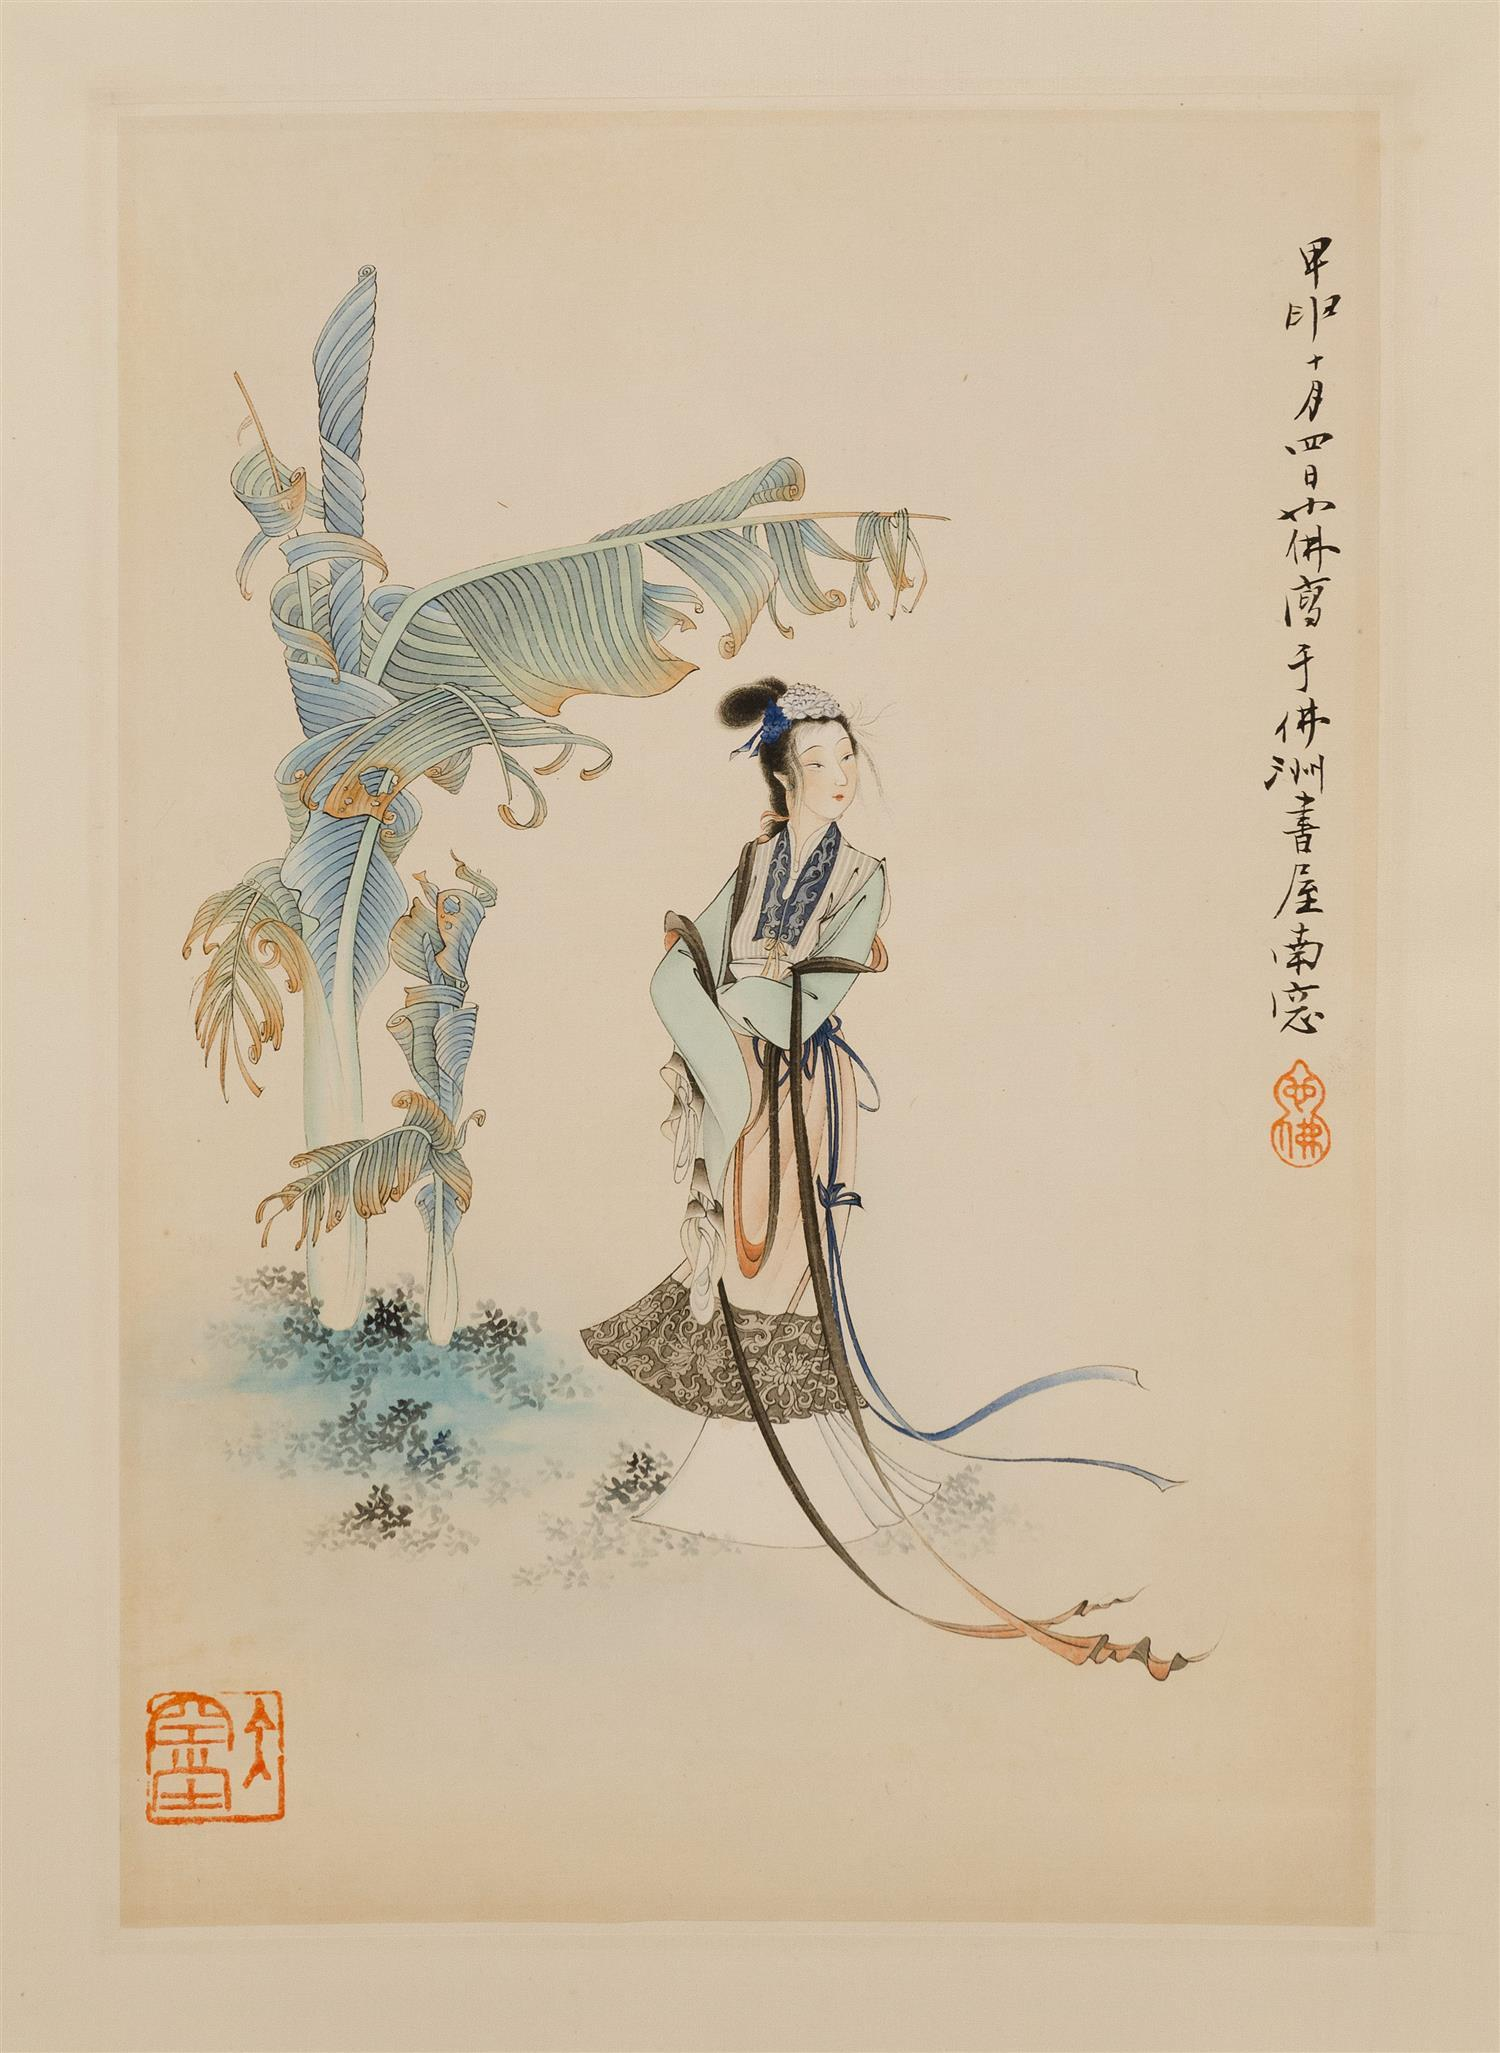 "CHINESE SCROLL PAINTING ON PAPER Depicting a maiden and palm tree. Marked with two seals and calligraphy. 13"" x 8.25""."